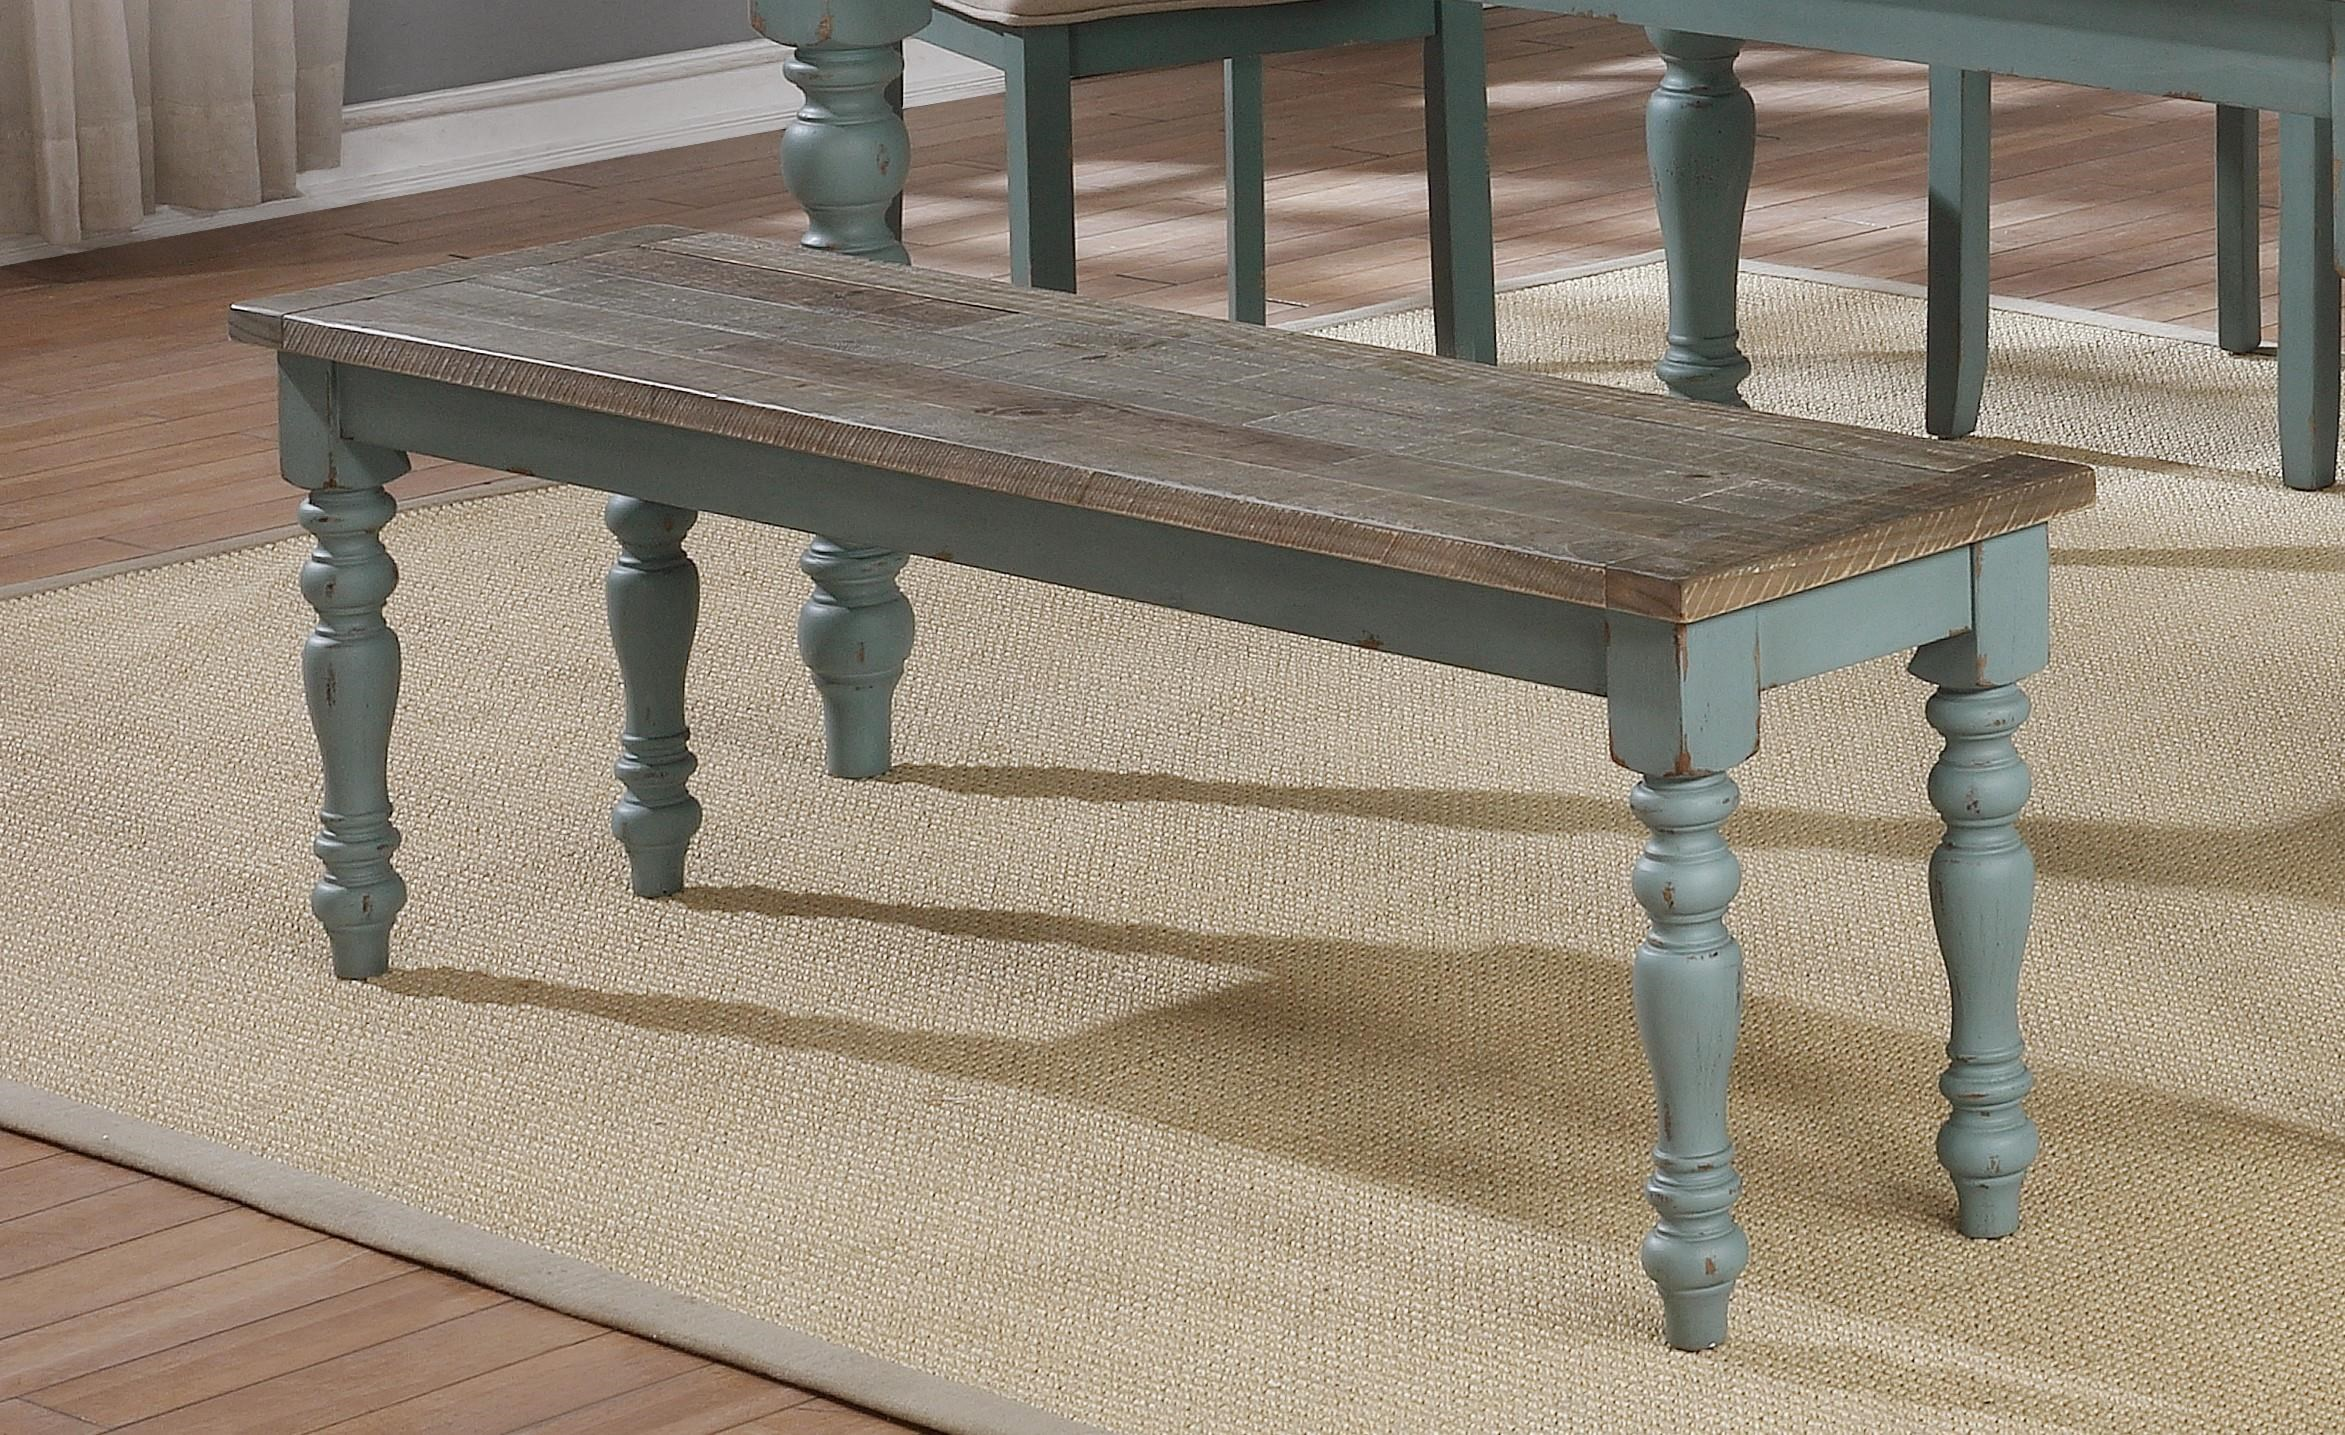 C1854D Blue/ Brown Bench by Lifestyle at Furniture Fair - North Carolina